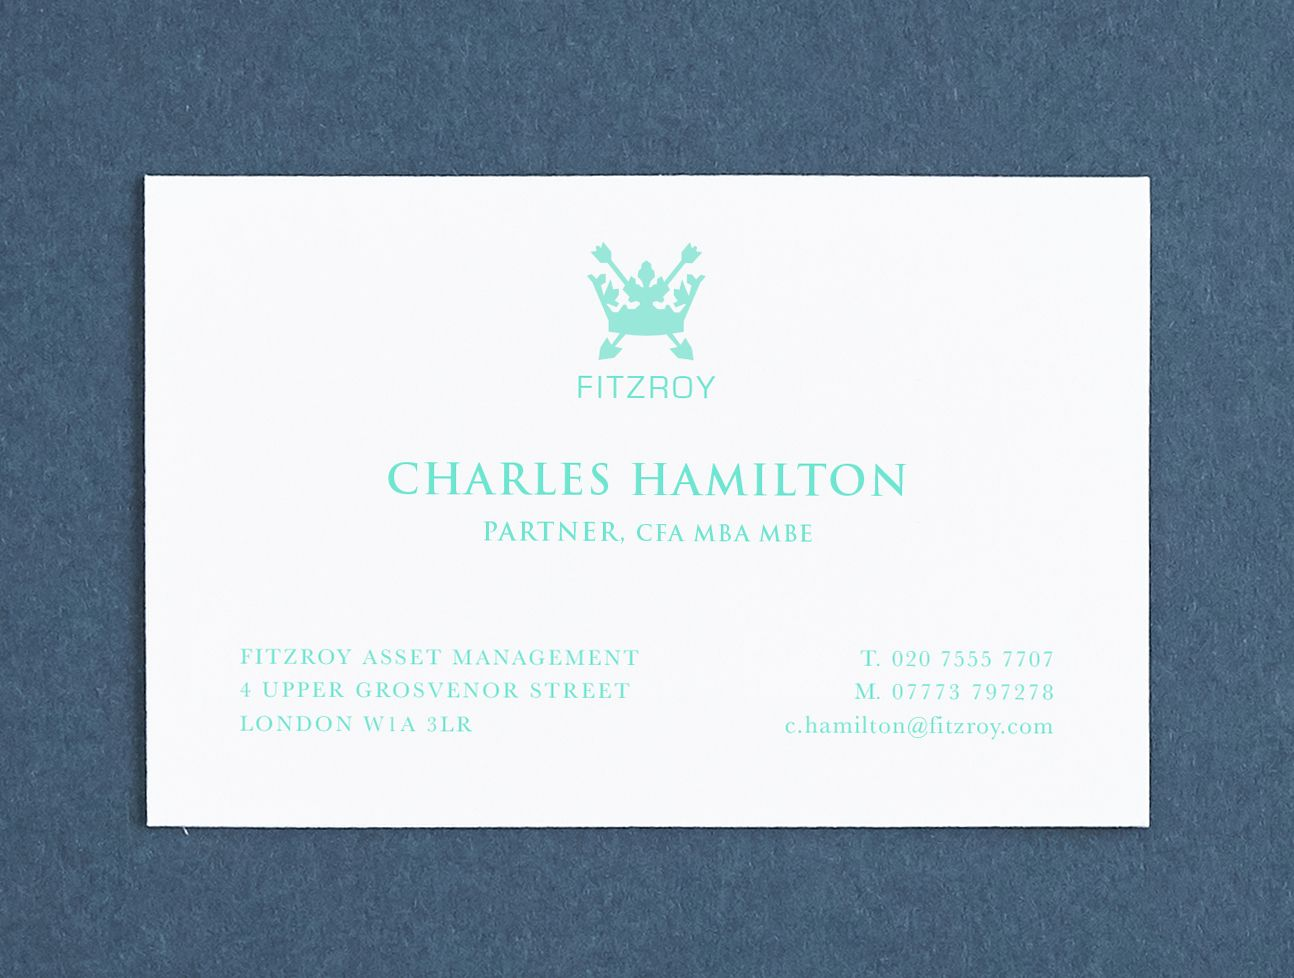 Printed Name Cards Custom Made Business Cards Personalised Professional Calling Cards Business Stationery Mint Green Make Business Cards Business Stationery Personal Business Cards